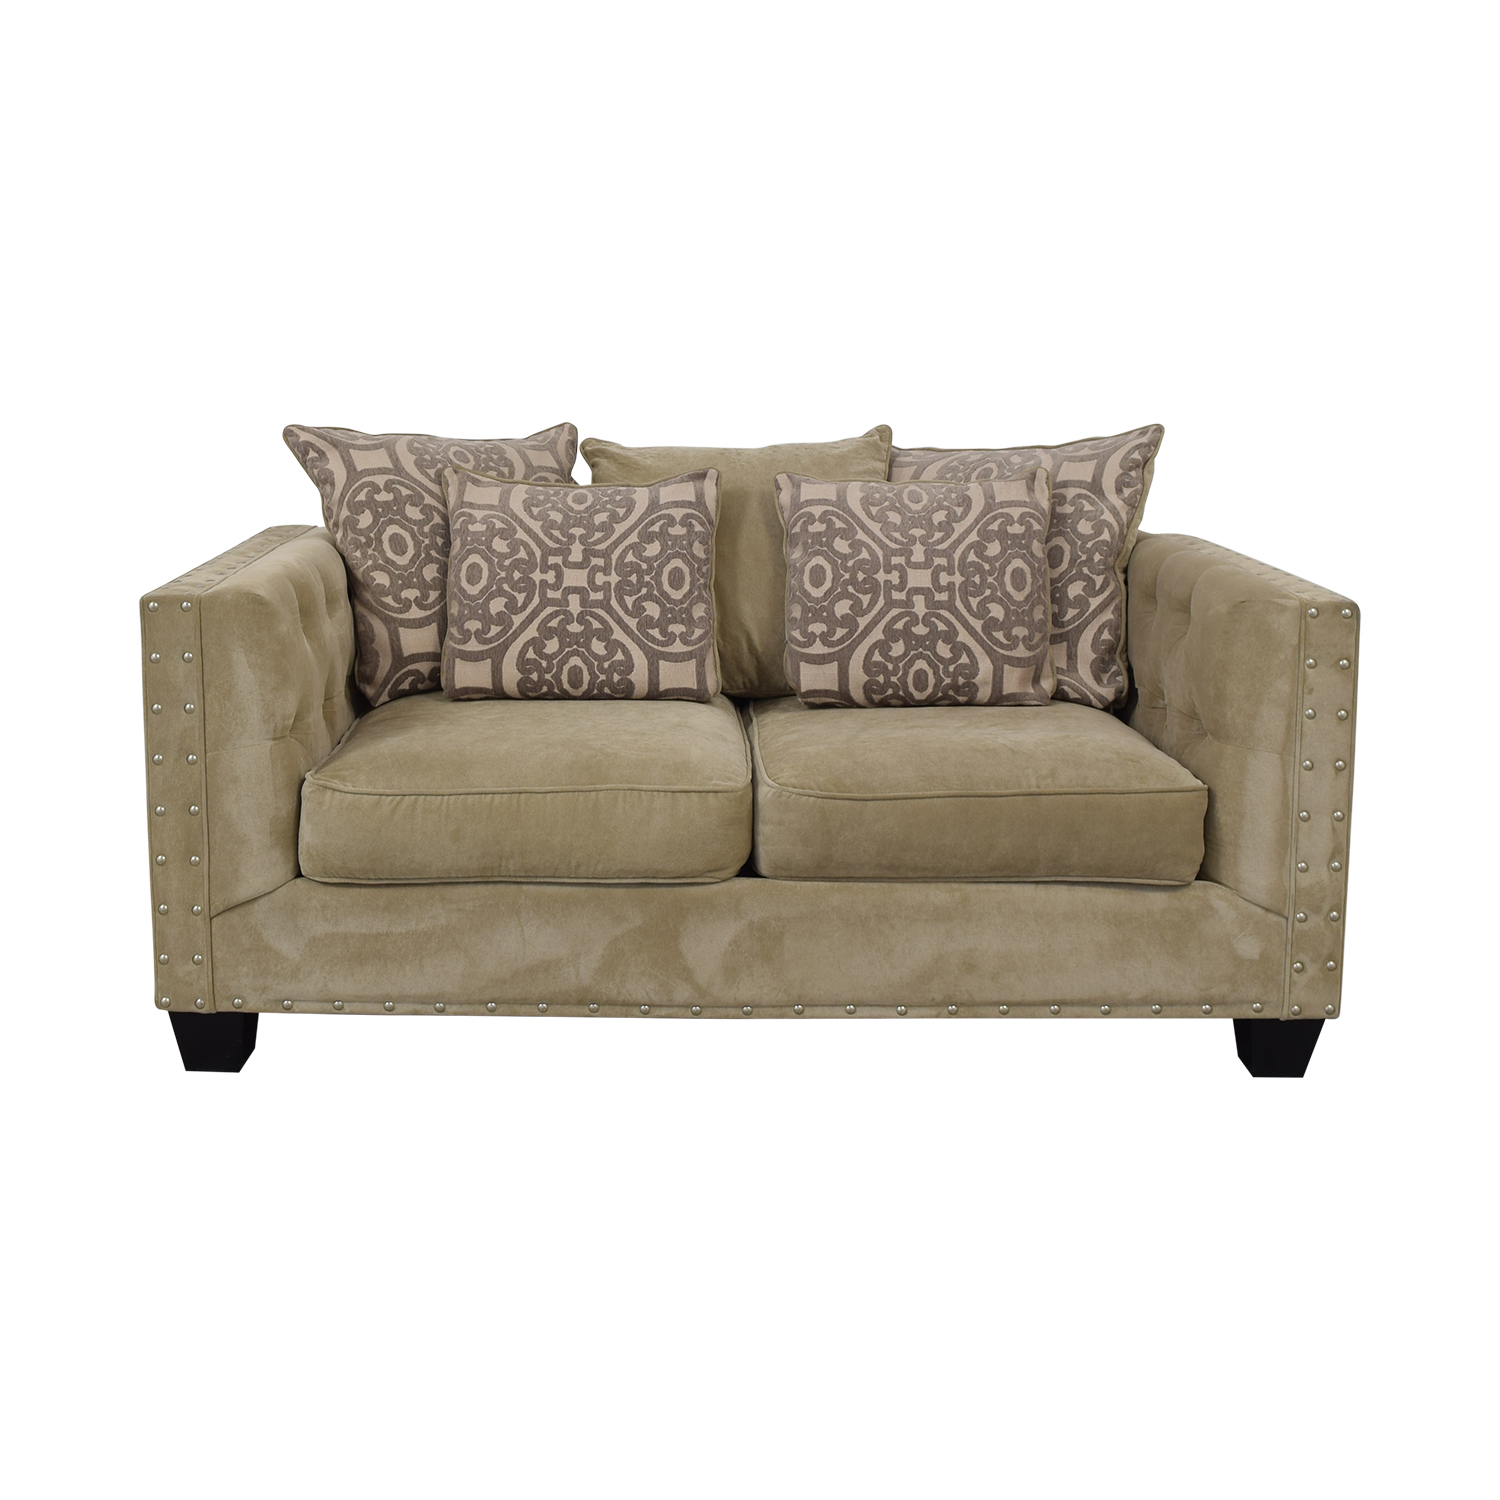 Cindy Crawford Home Cindy Crawford Home Calista Microfiber Loveseat on sale